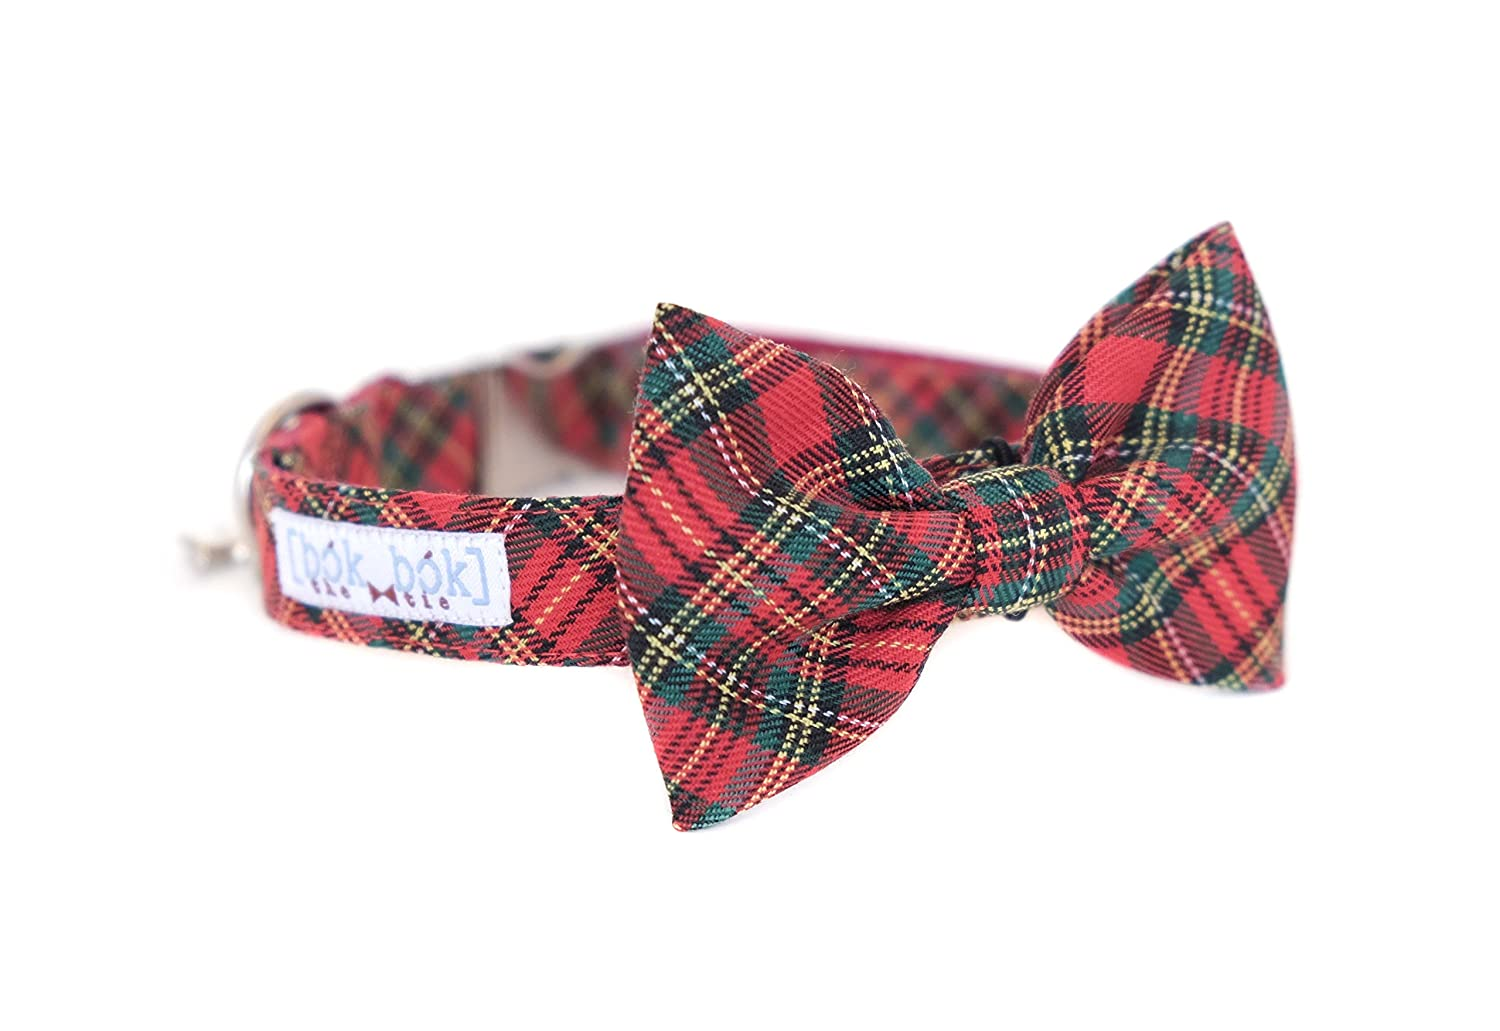 Small Christmas Red & Green Tartan Hand Stitched Dog Cat Pet Bow Tie Bowtie with a Collar Accessory (Small)